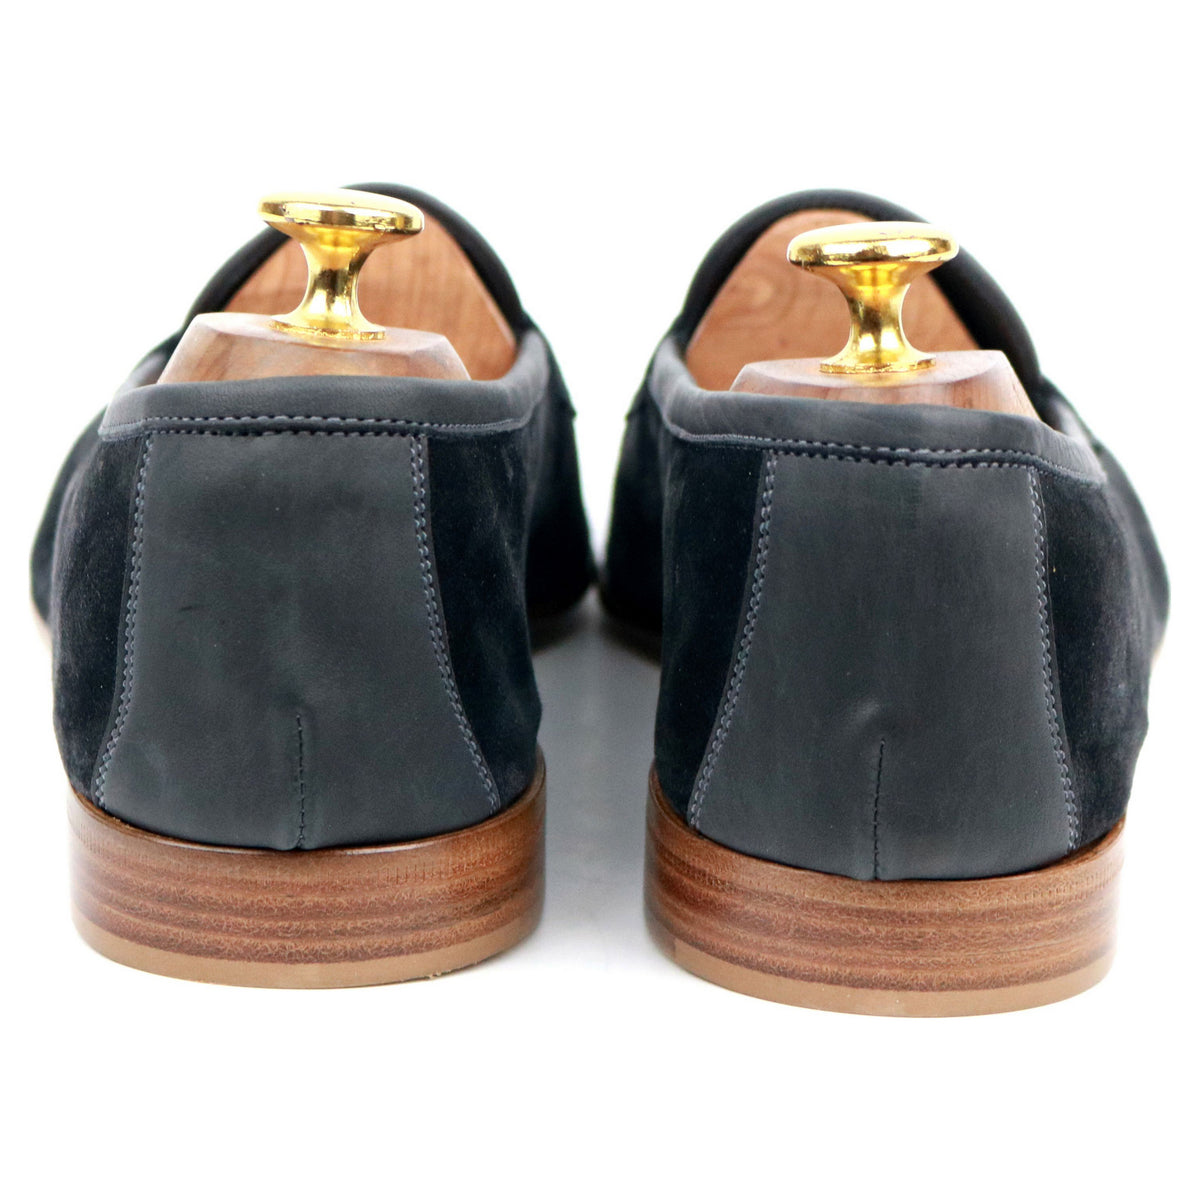 Edward Green 'Polperro' Navy Blue Loafers UK 8.5 E